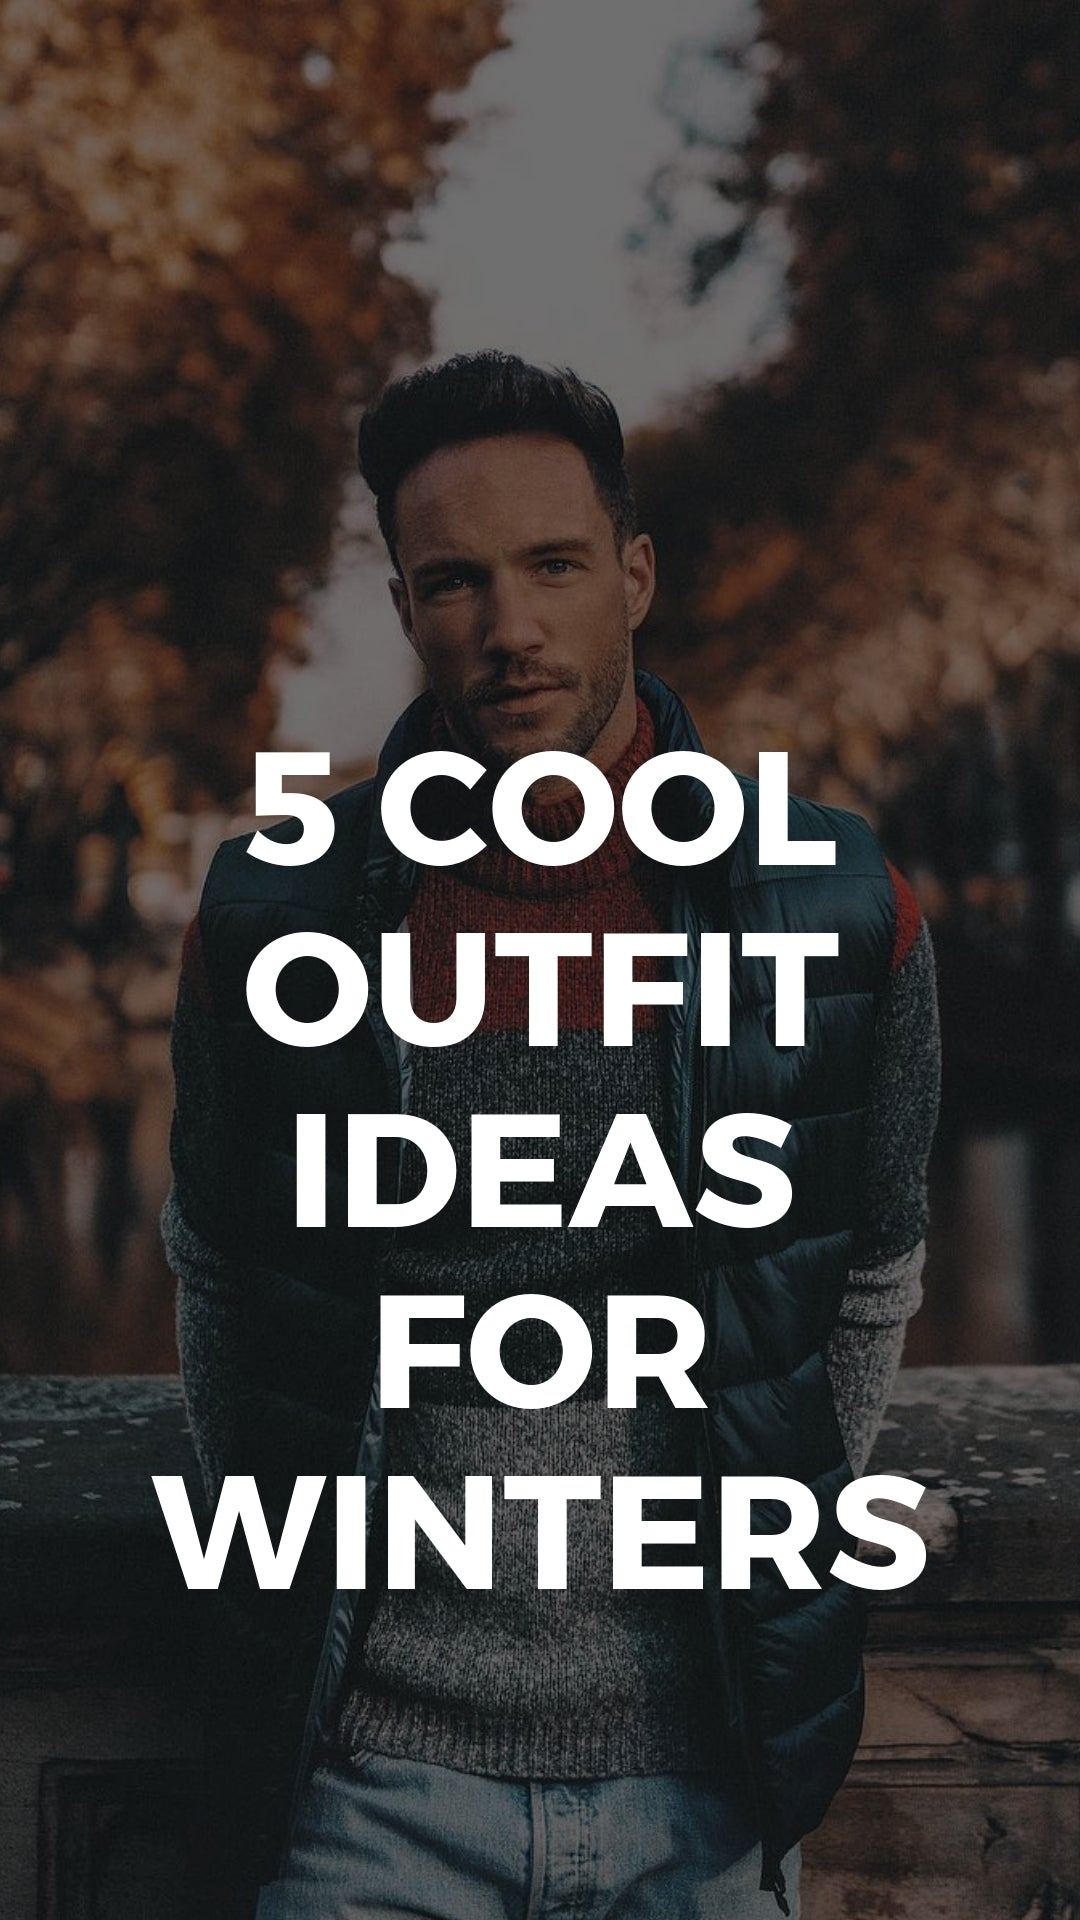 5 Cool winter outfits for men. #winterfashion #fallfashion #mensfashion #streetstyle